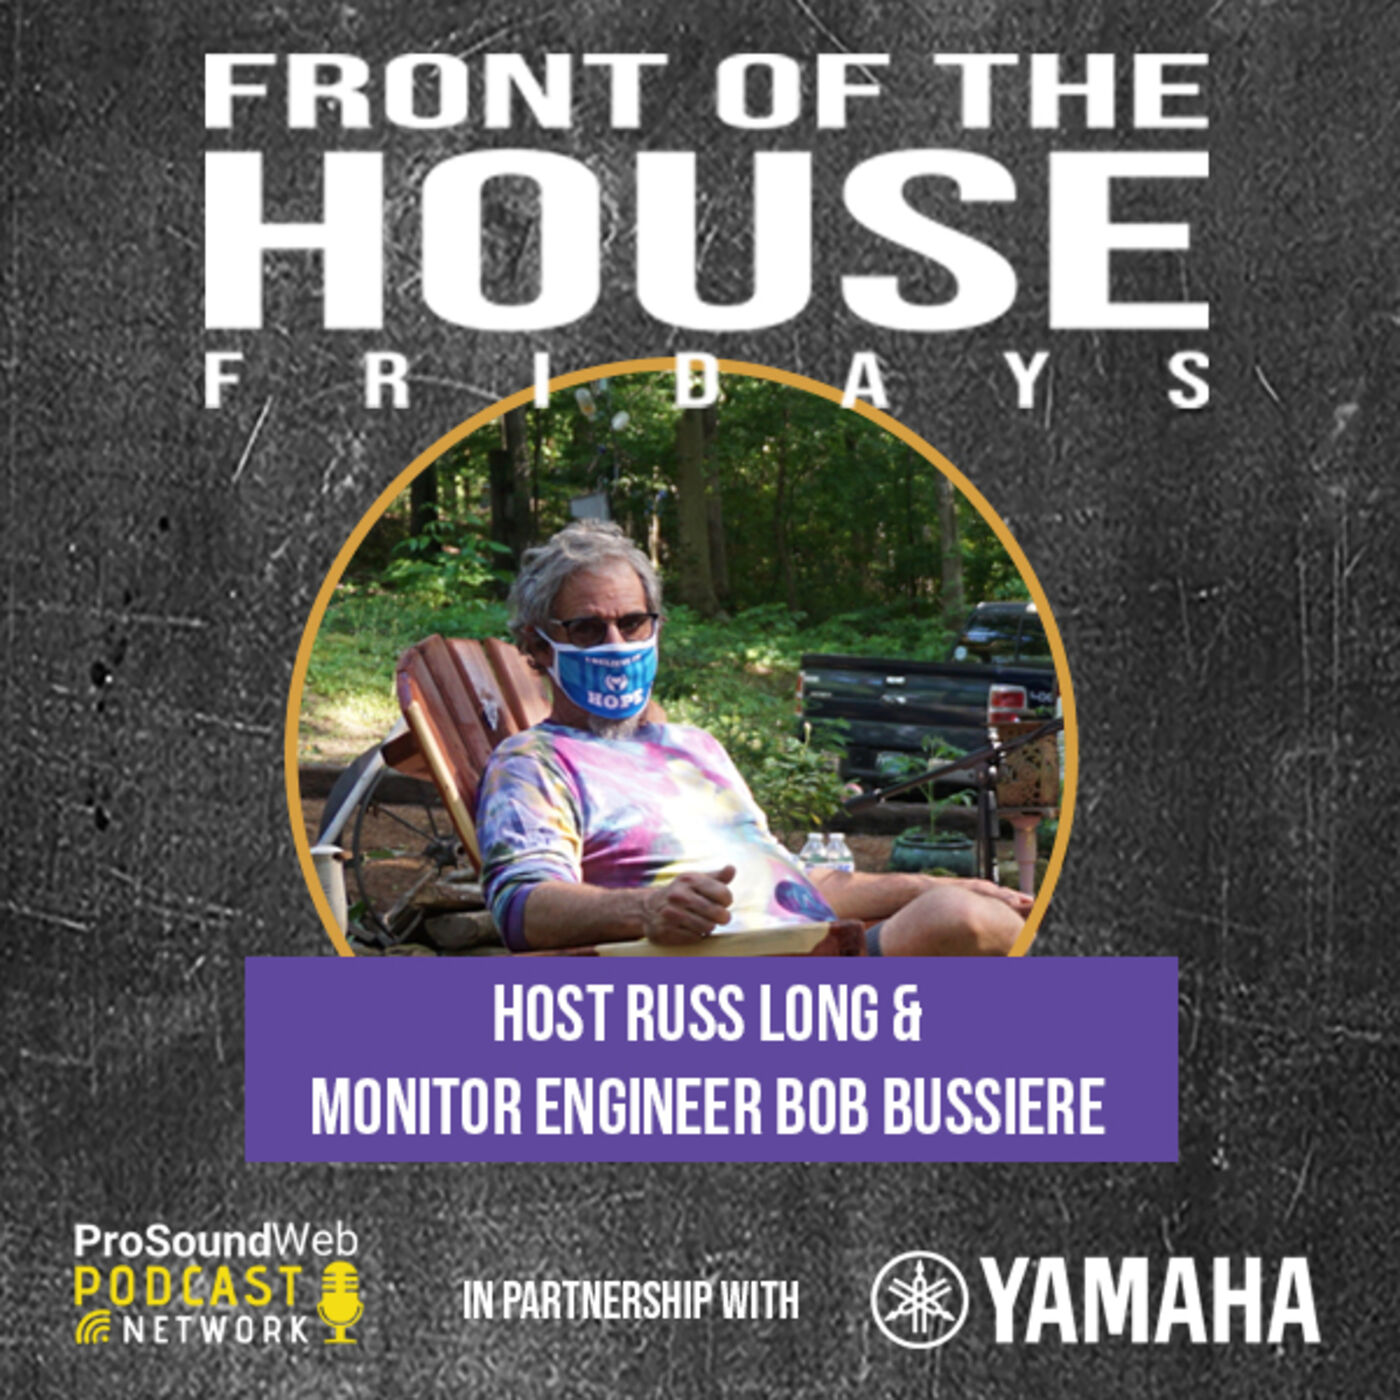 Episode 3: Monitor Engineer Bob Bussiere